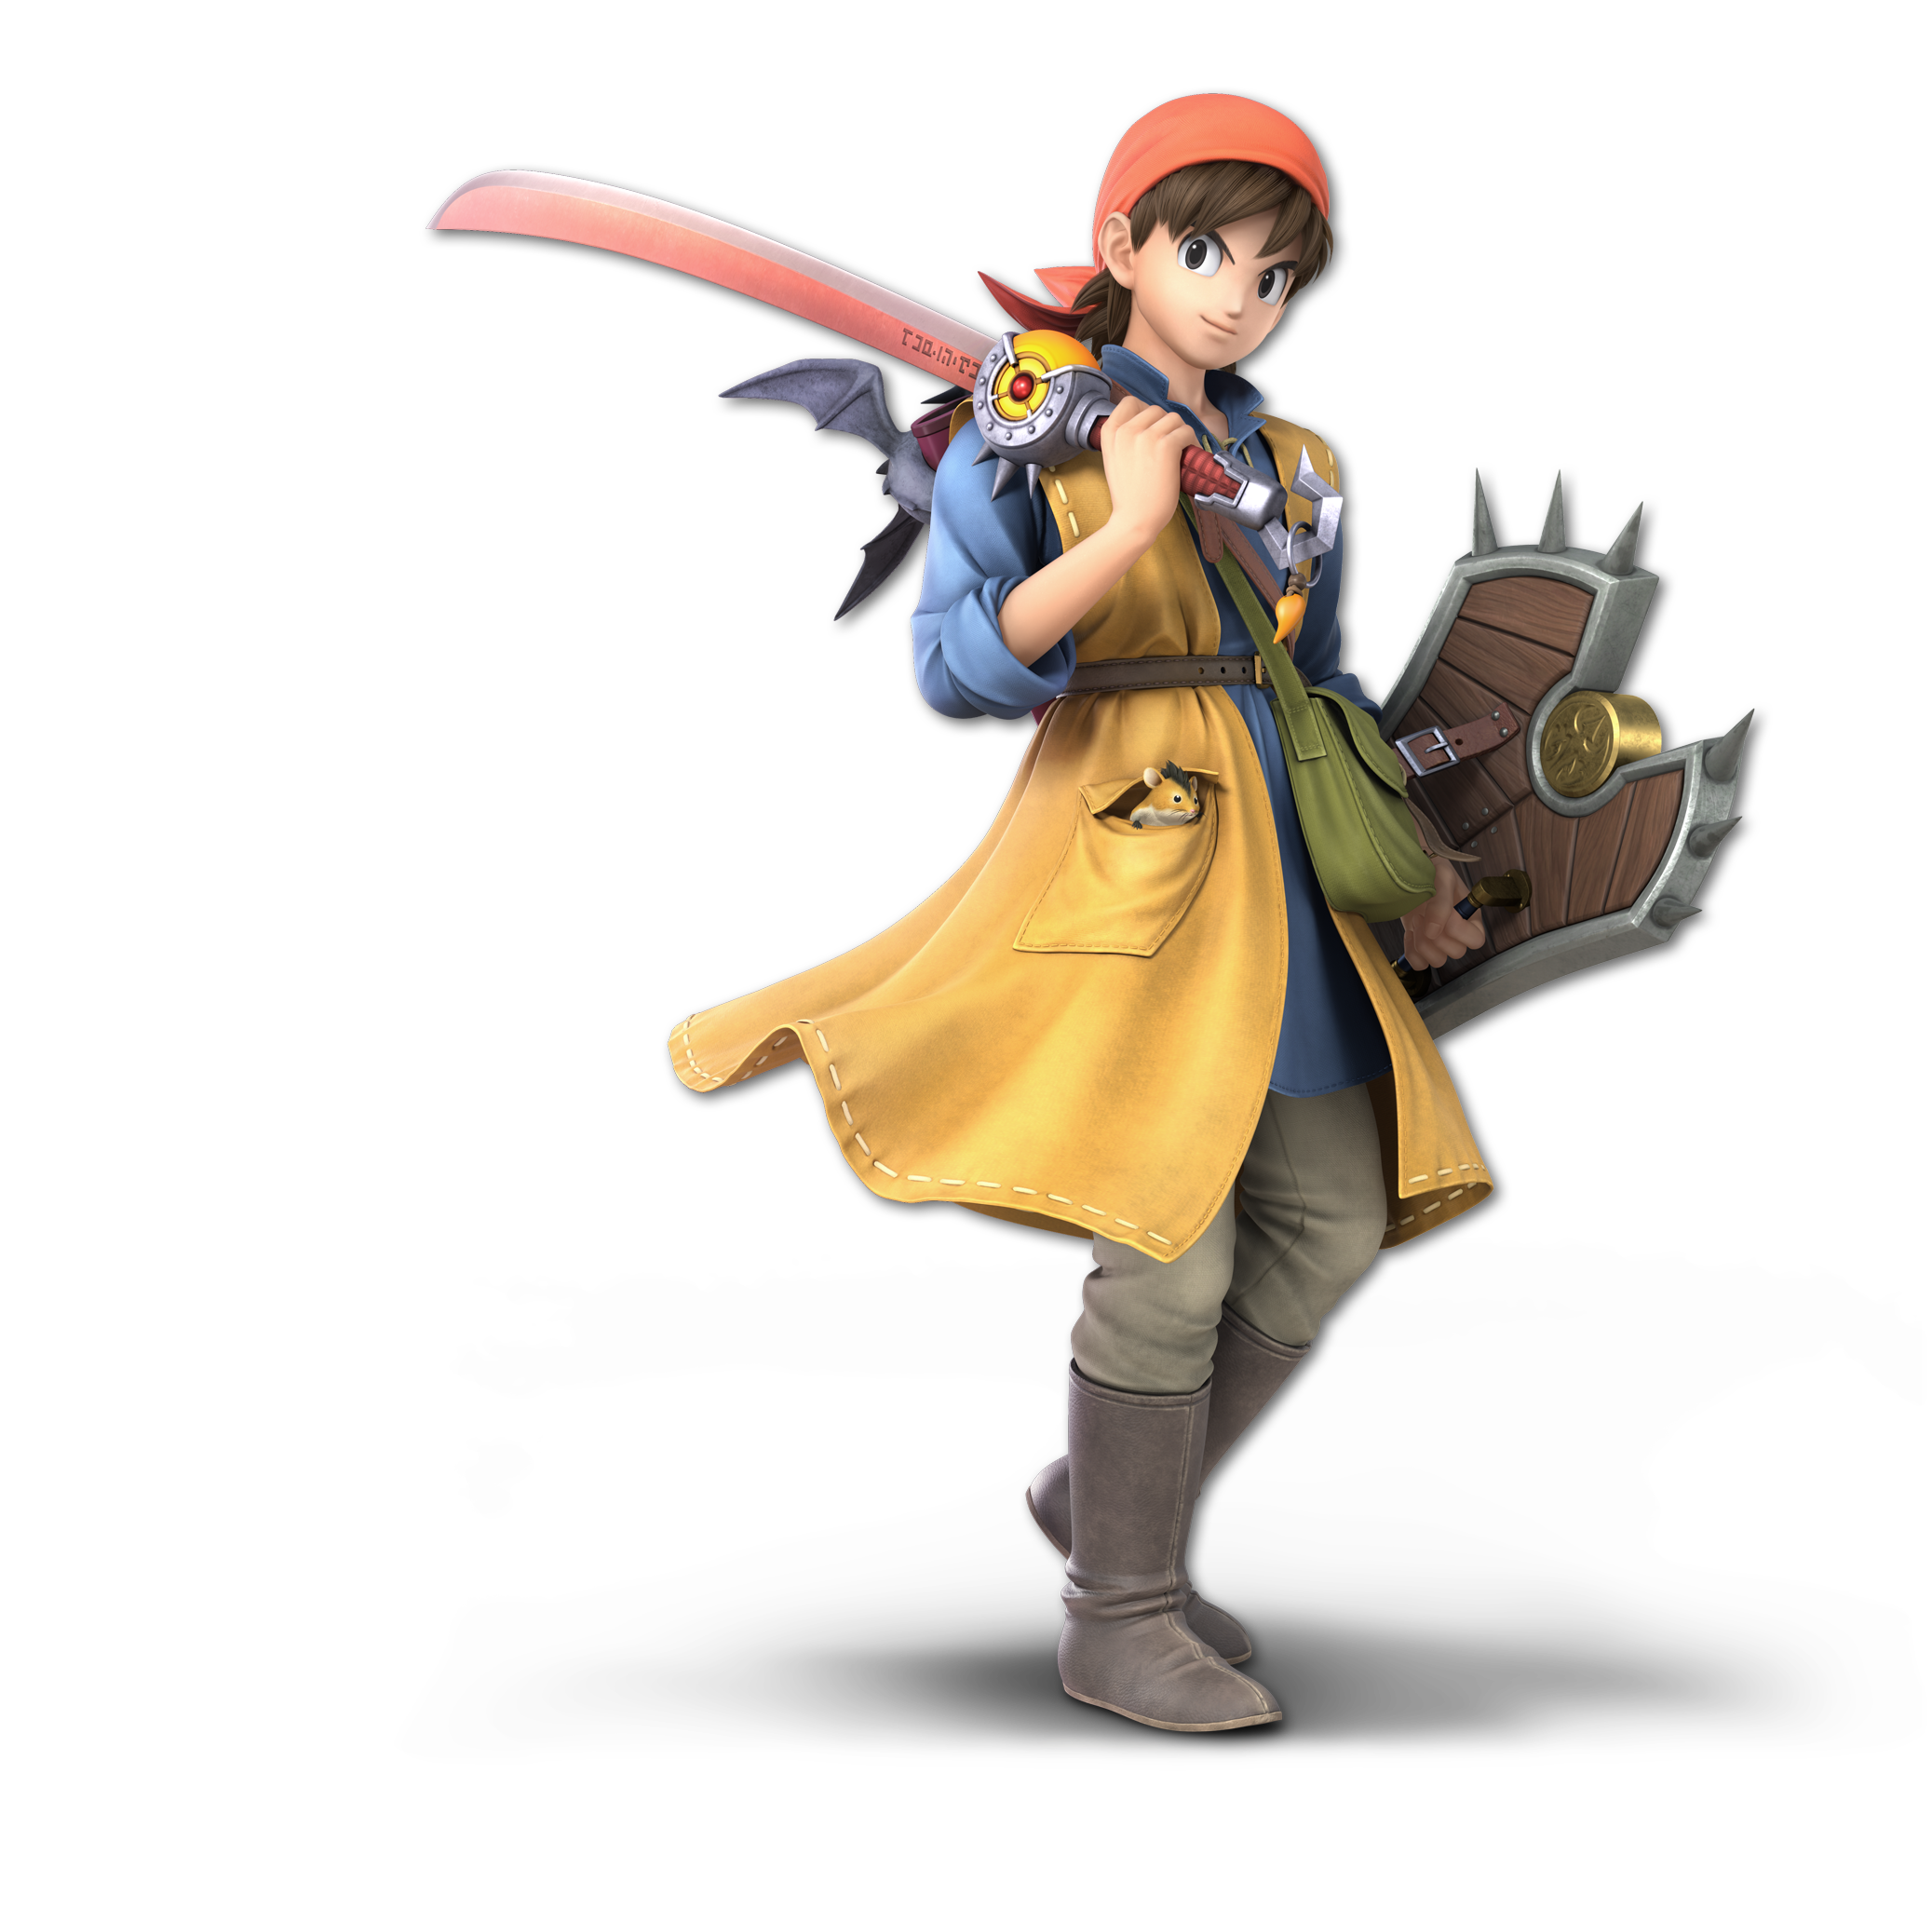 Hero (Super Smash Bros. Ultimate)